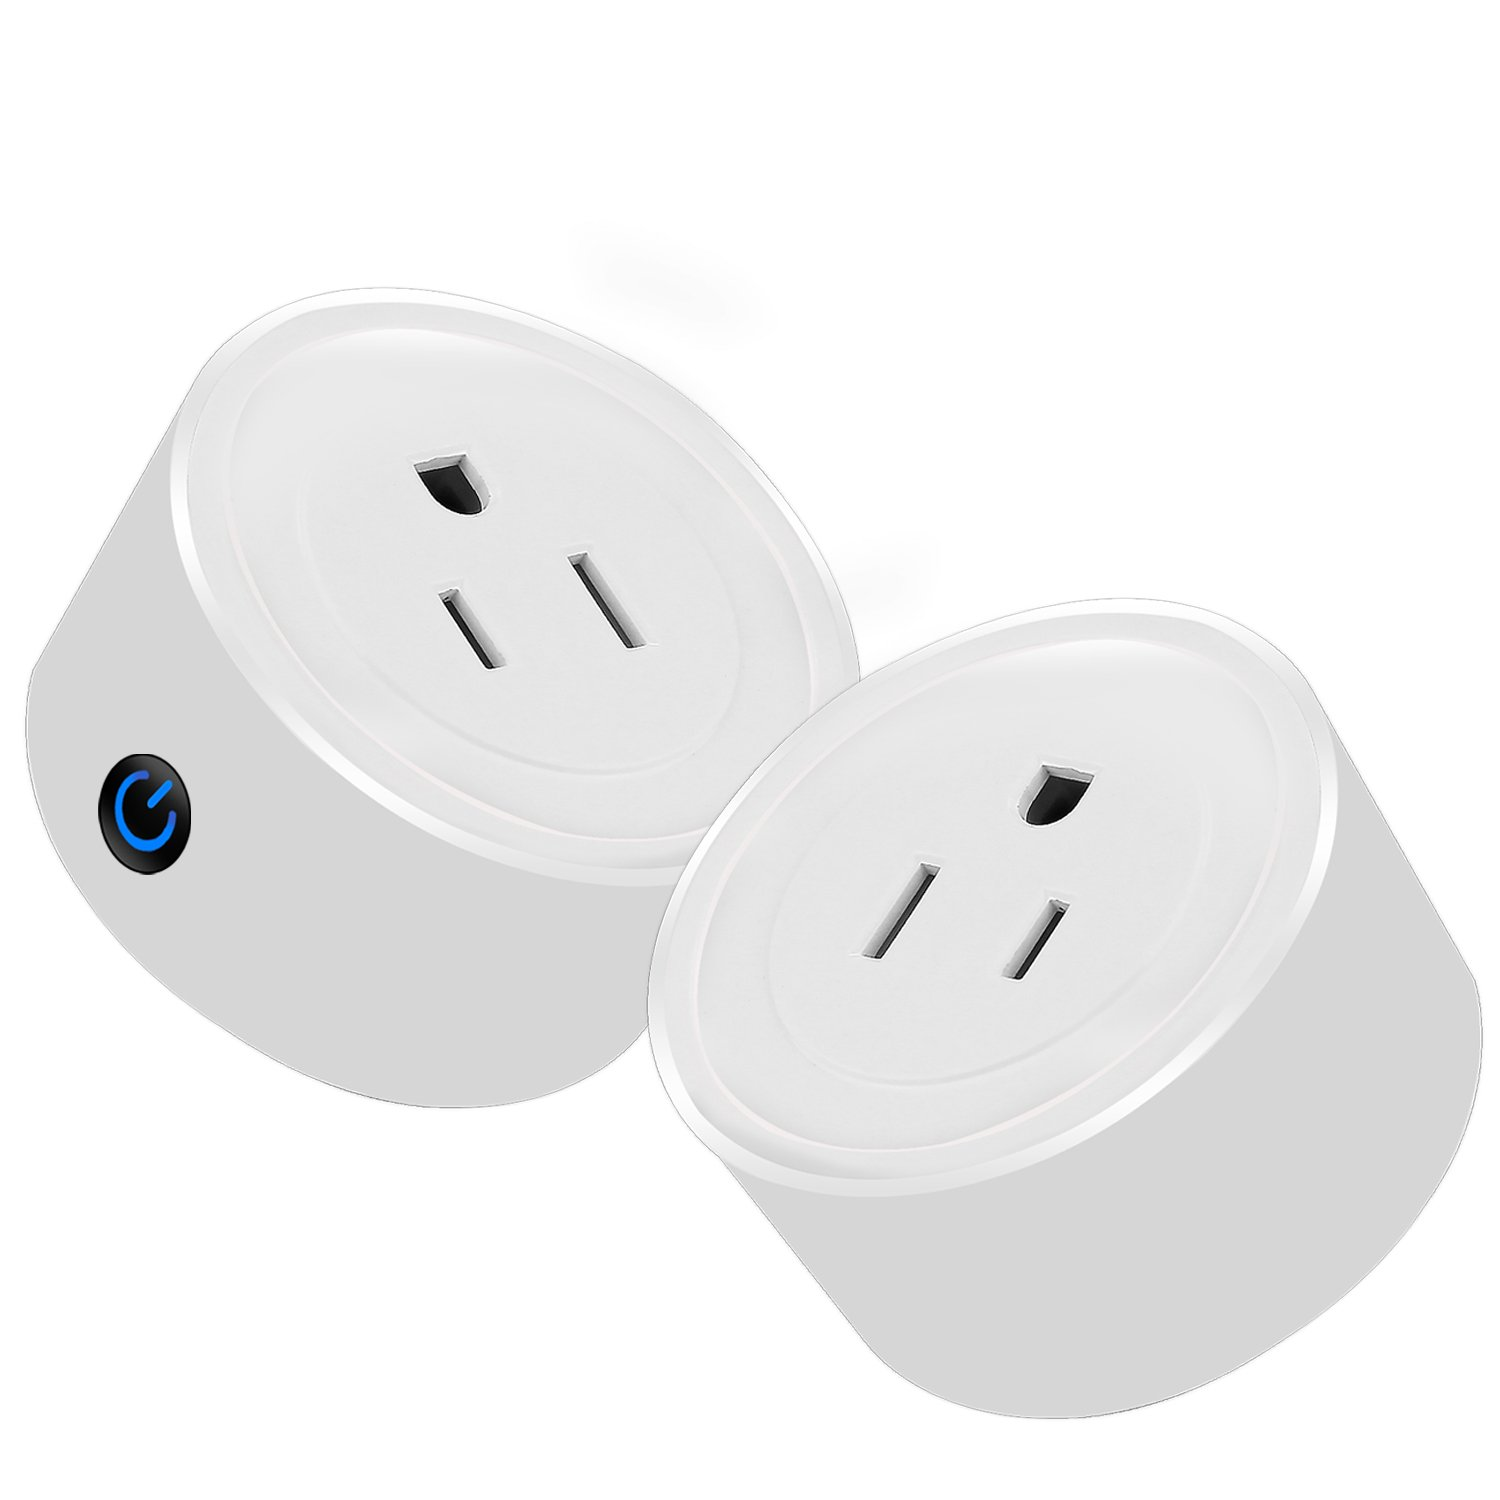 Martin Jerry mini Smart Plug Compatible with Alexa, Smart Home Devices Works with Google Home, No Hub required, Easy installation and App control Smart Switch On / Off / Timing (Model: V01) (2 Pack)